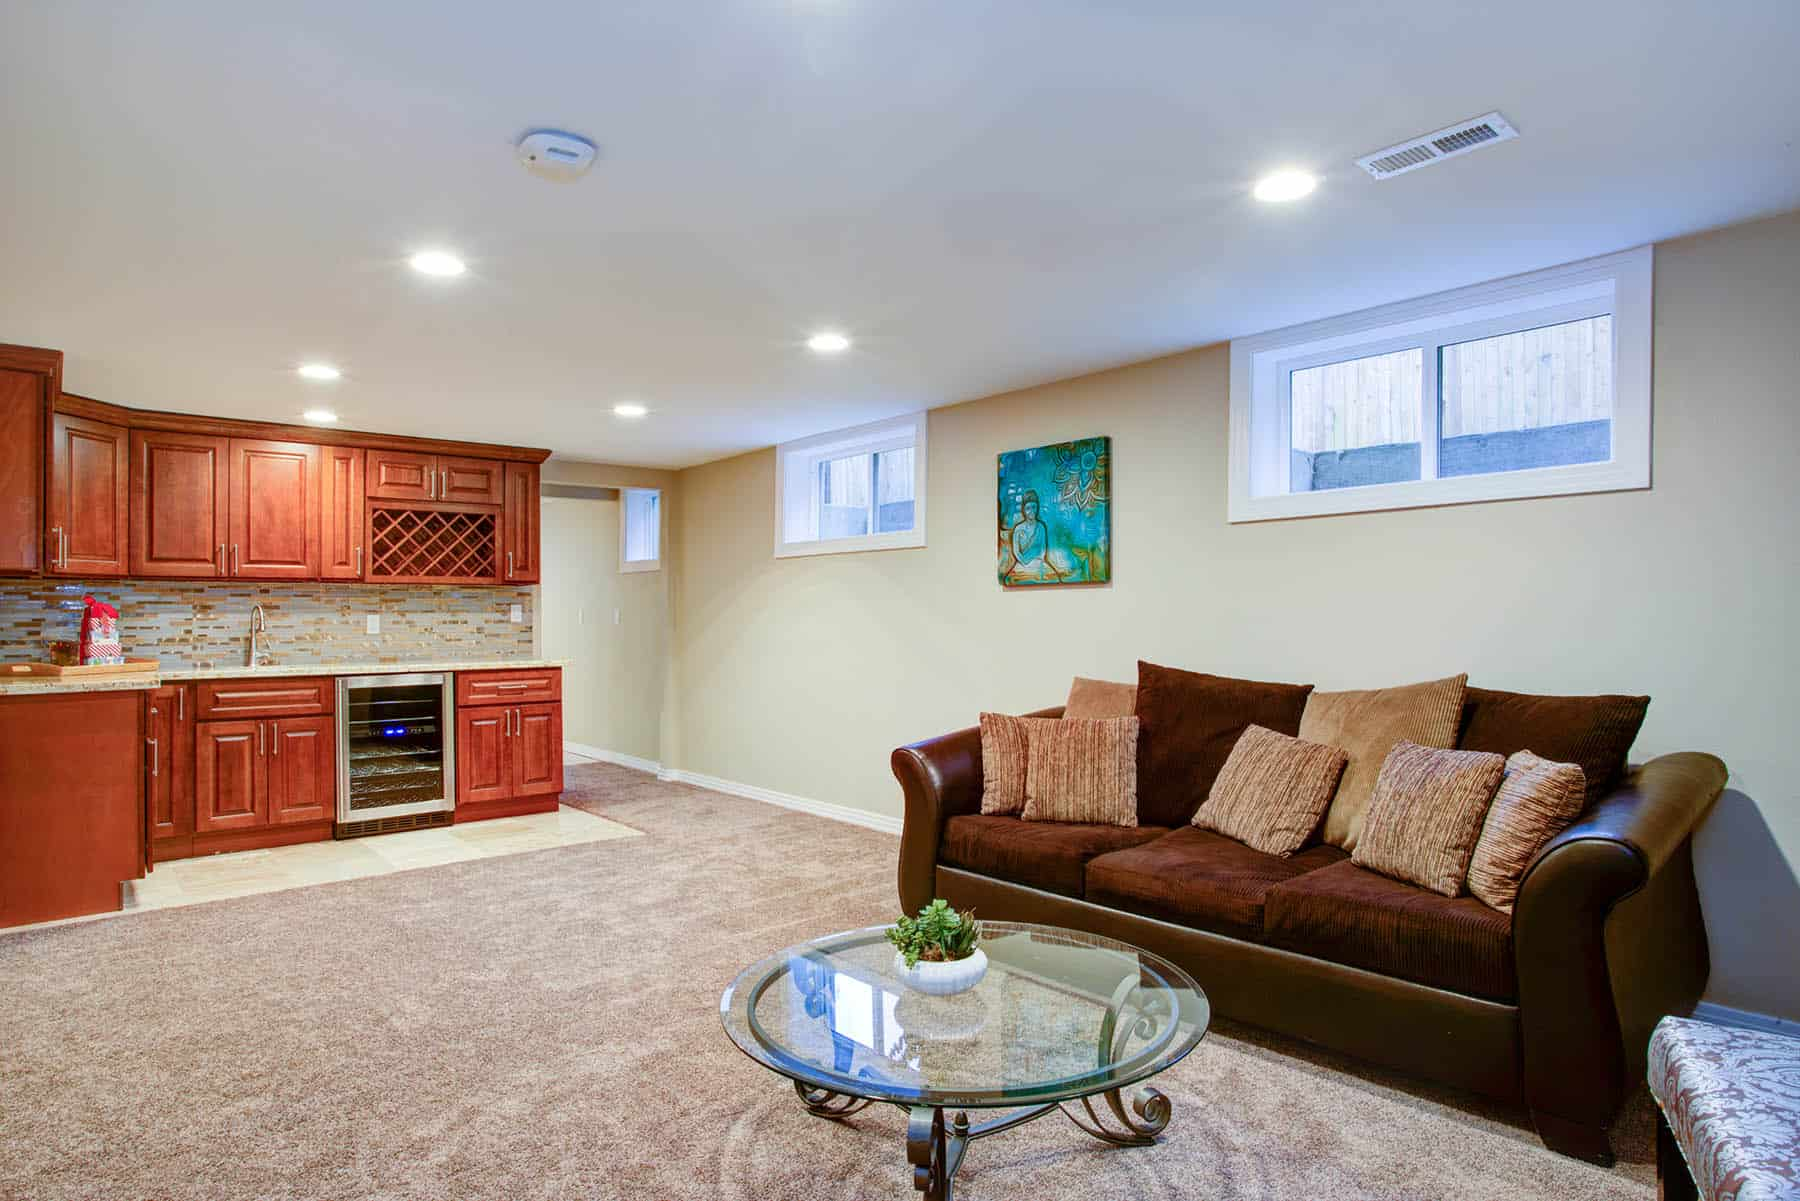 Basement Finishing Contractor, Basement Finishing Contractor, Custom Built Design & Remodeling, Custom Built Design & Remodeling